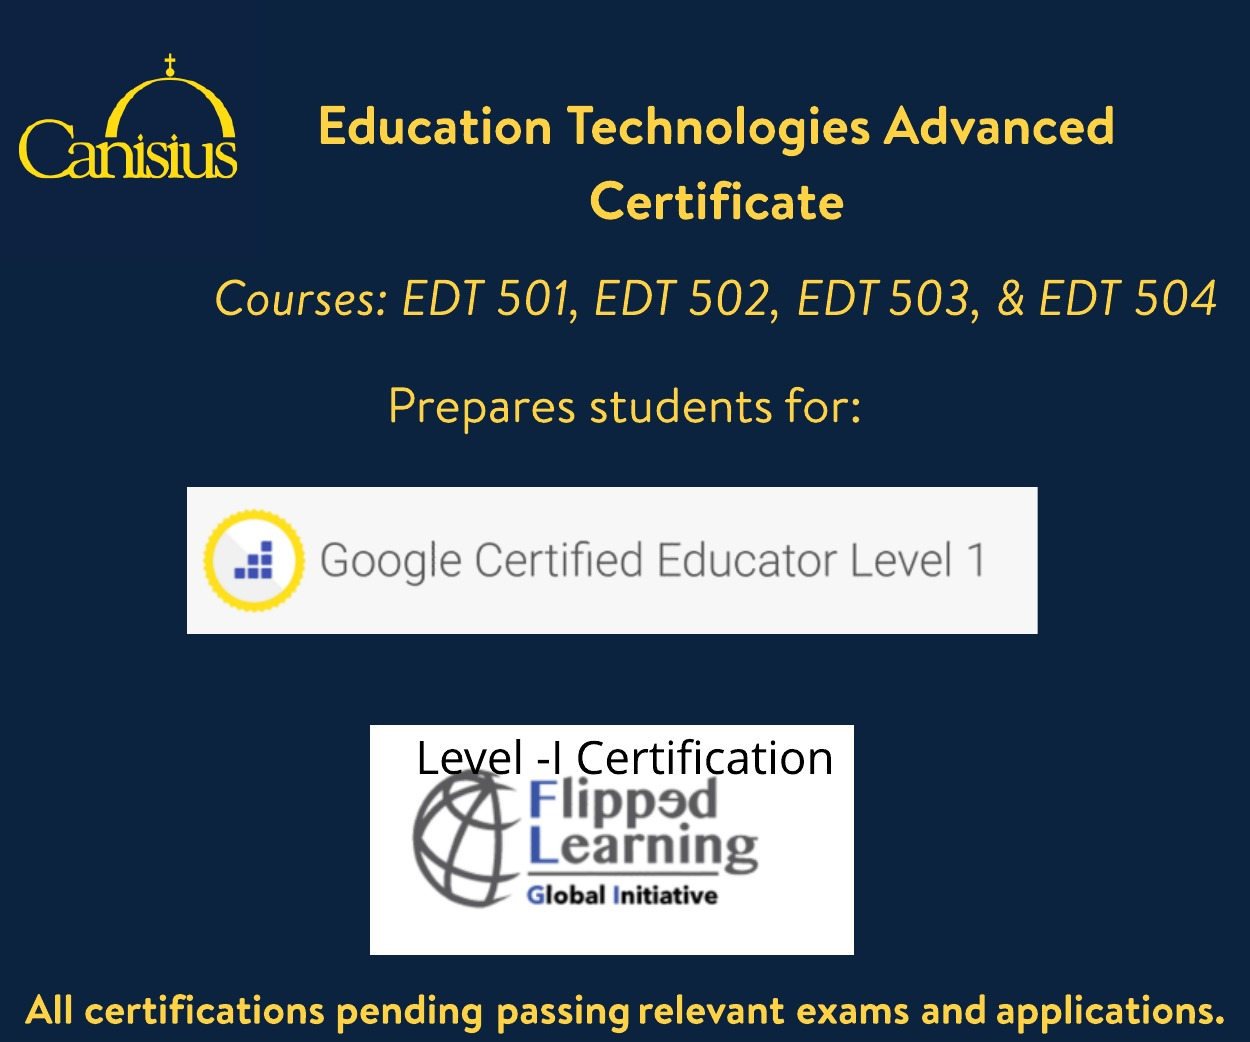 Canisiusedtech earn ctle credit google educator level 1 about the education technologies and emerging media program at canisius college the education technologies and emerging media programs are innovative and xflitez Images